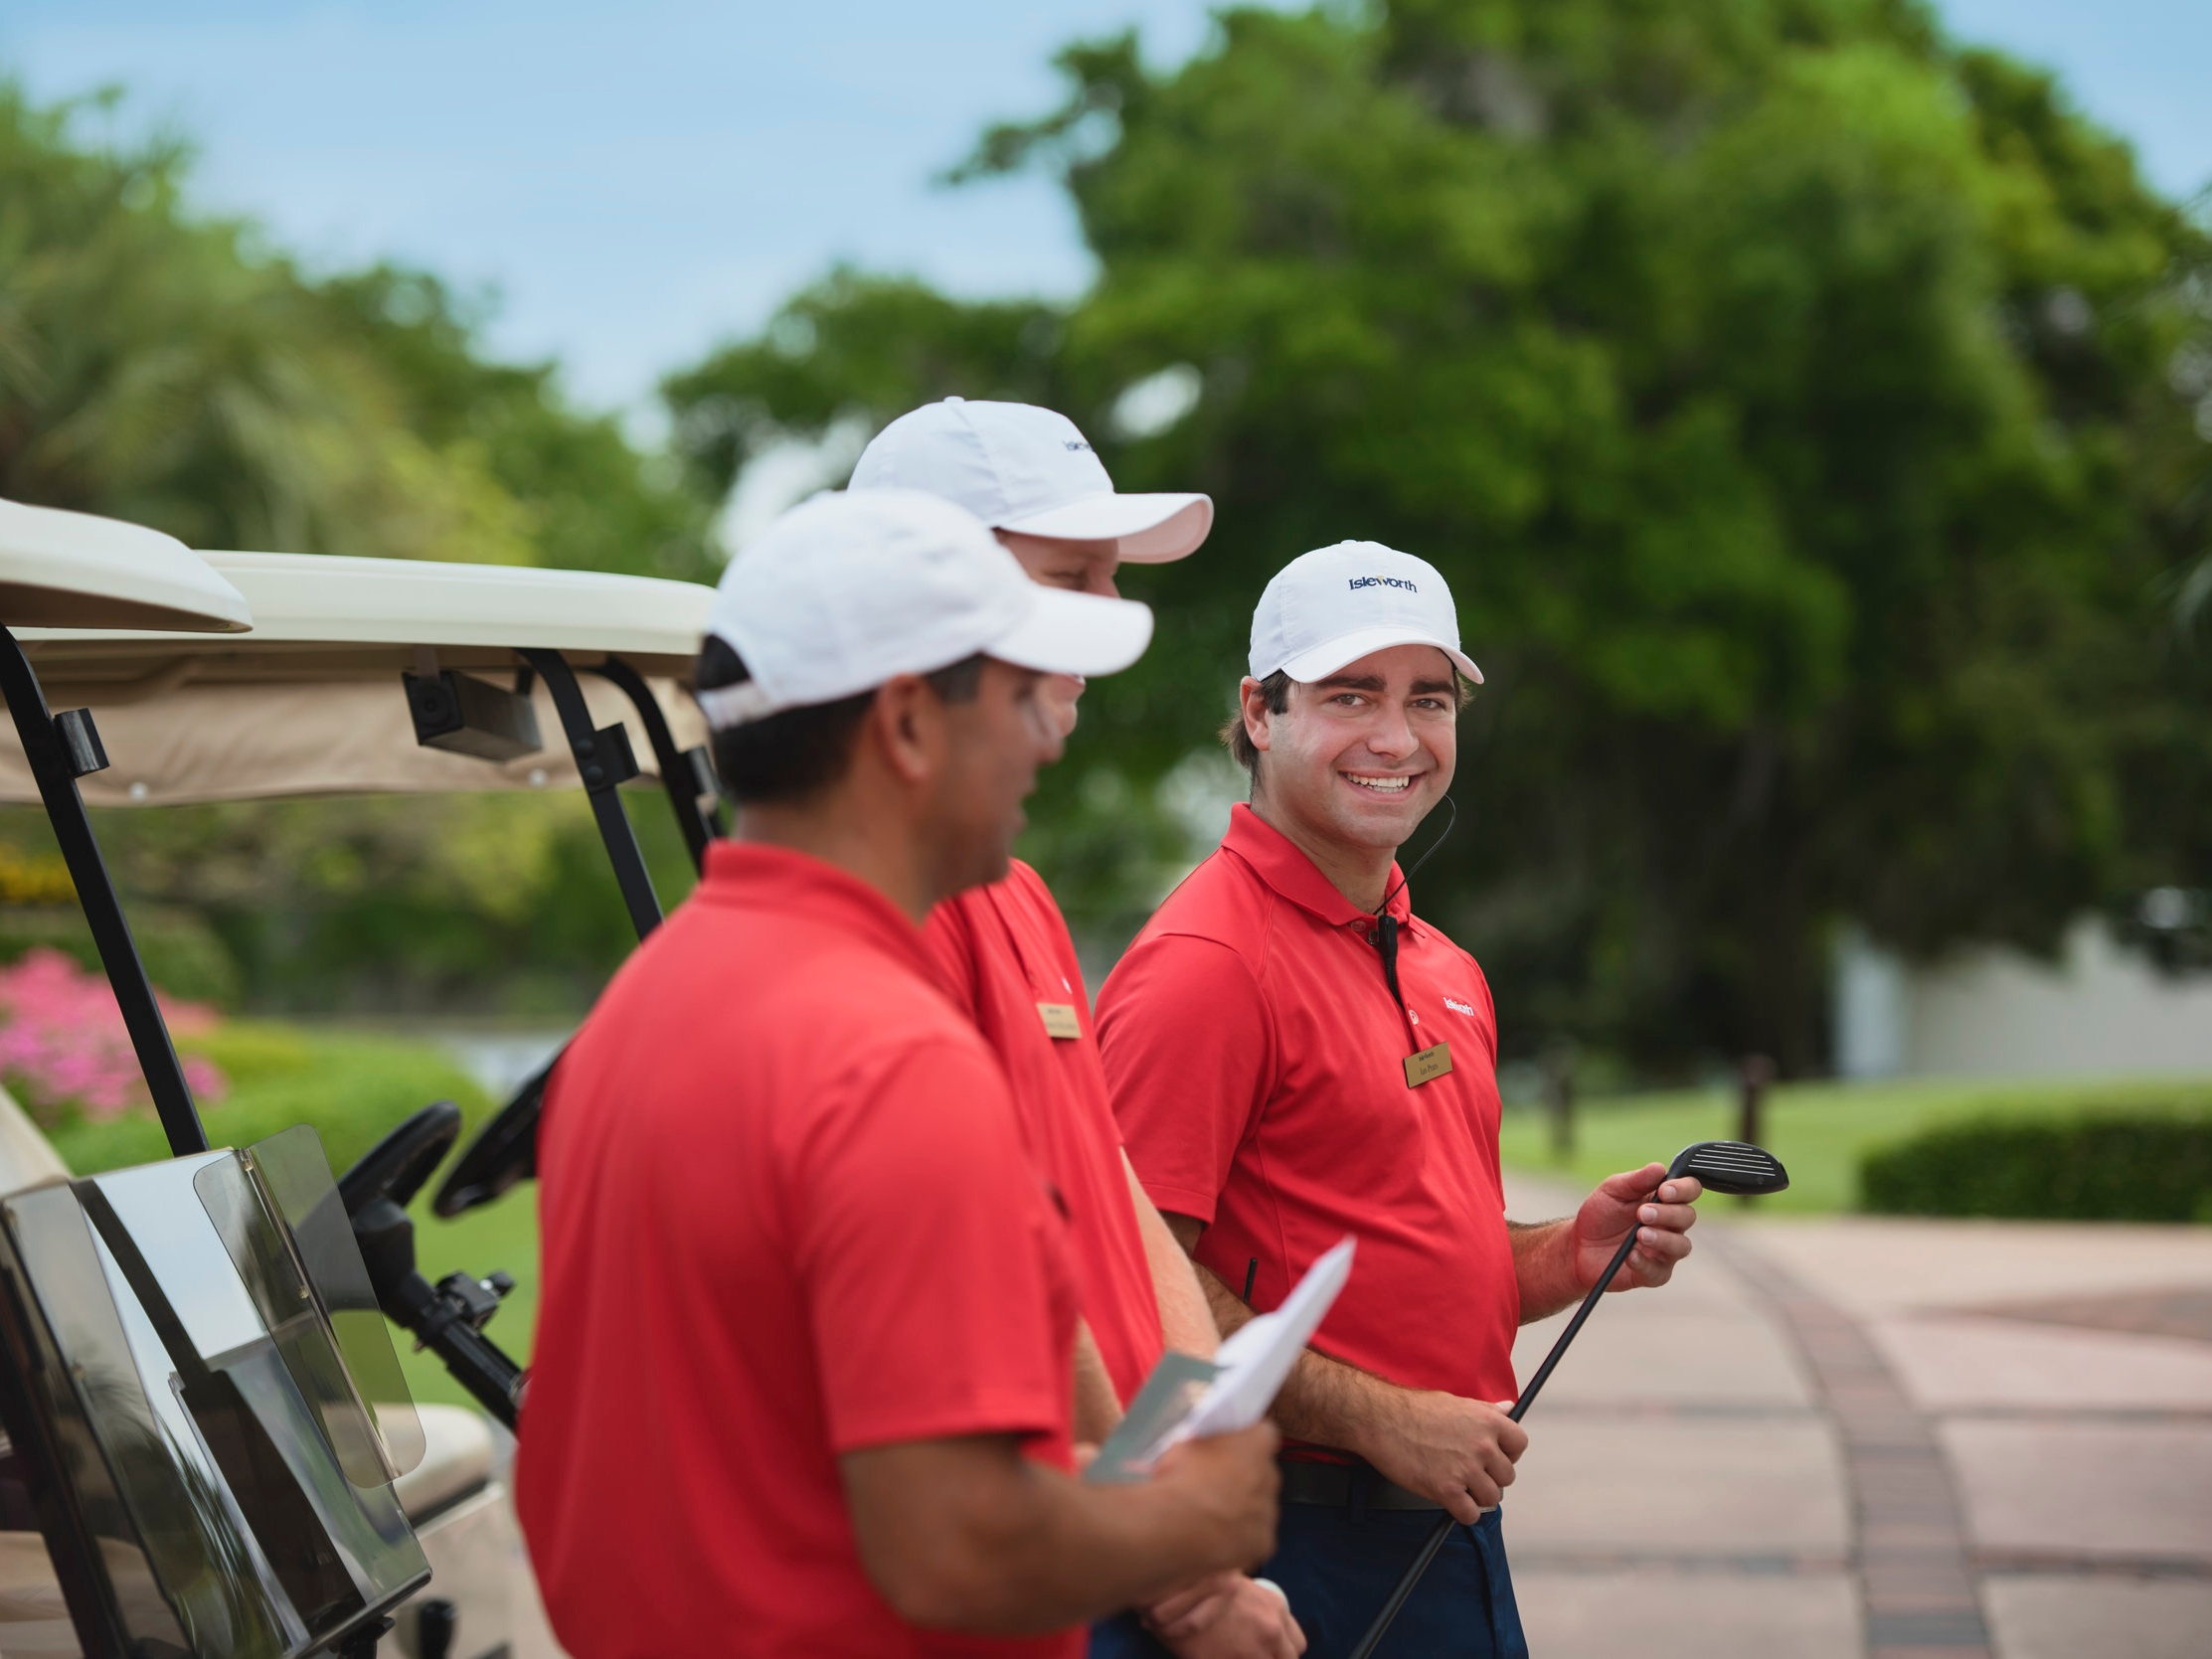 GOLF - Home to one of the most iconic golf courses in the country, Isleworth boasts a championship course complemented by world-class practice facilities.